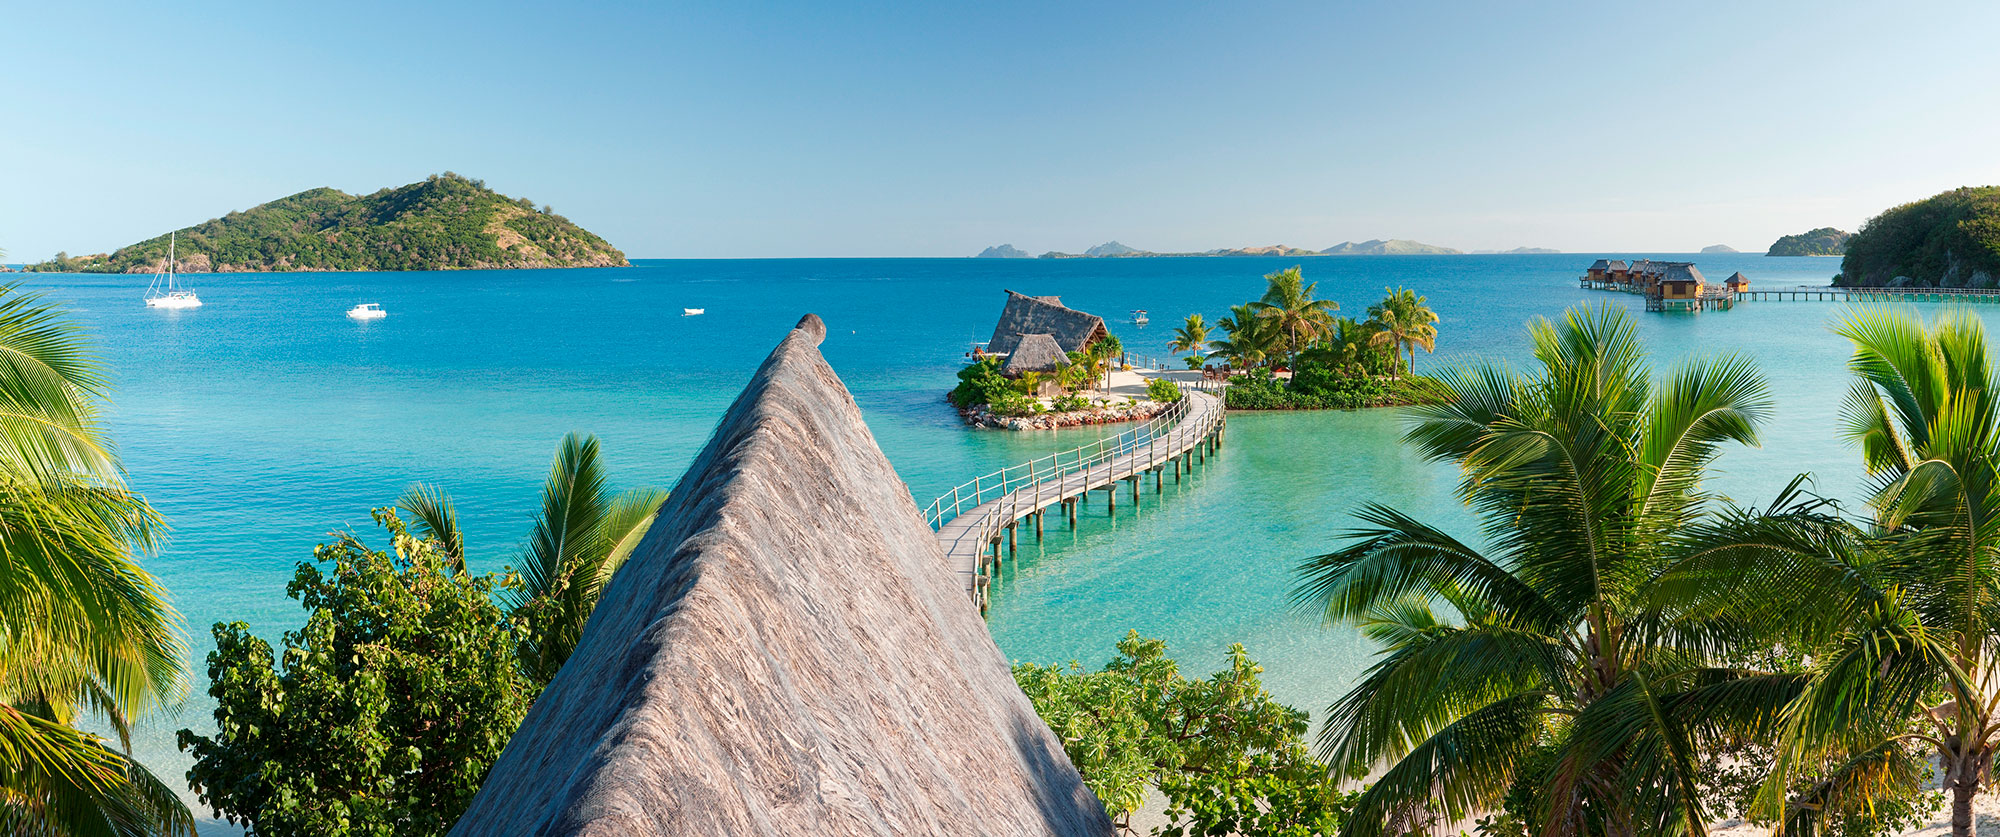 Fiji Overwater Bungalows: Fiji Beach Resort Vacation